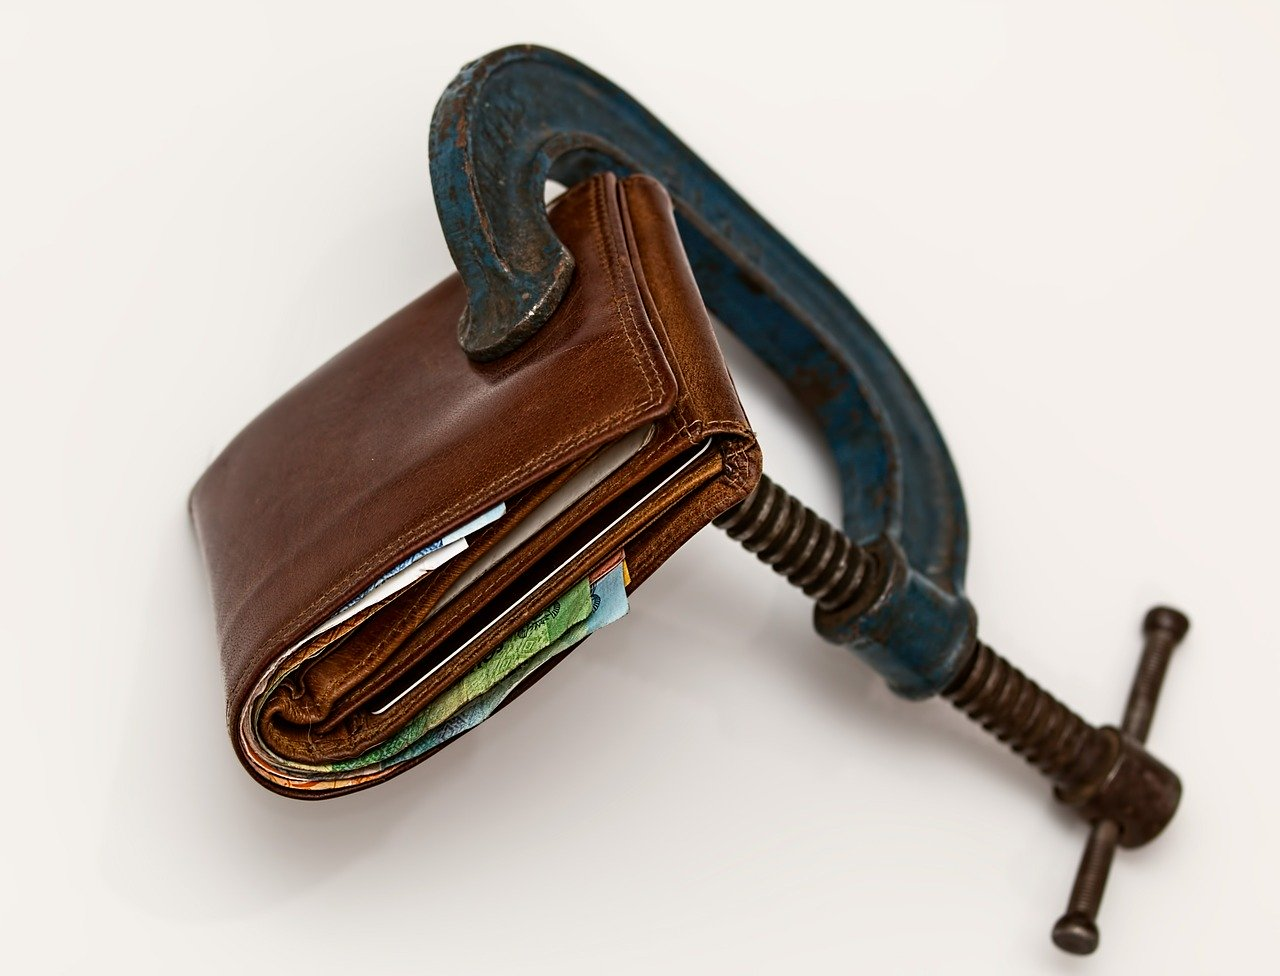 Wallet tightly closed